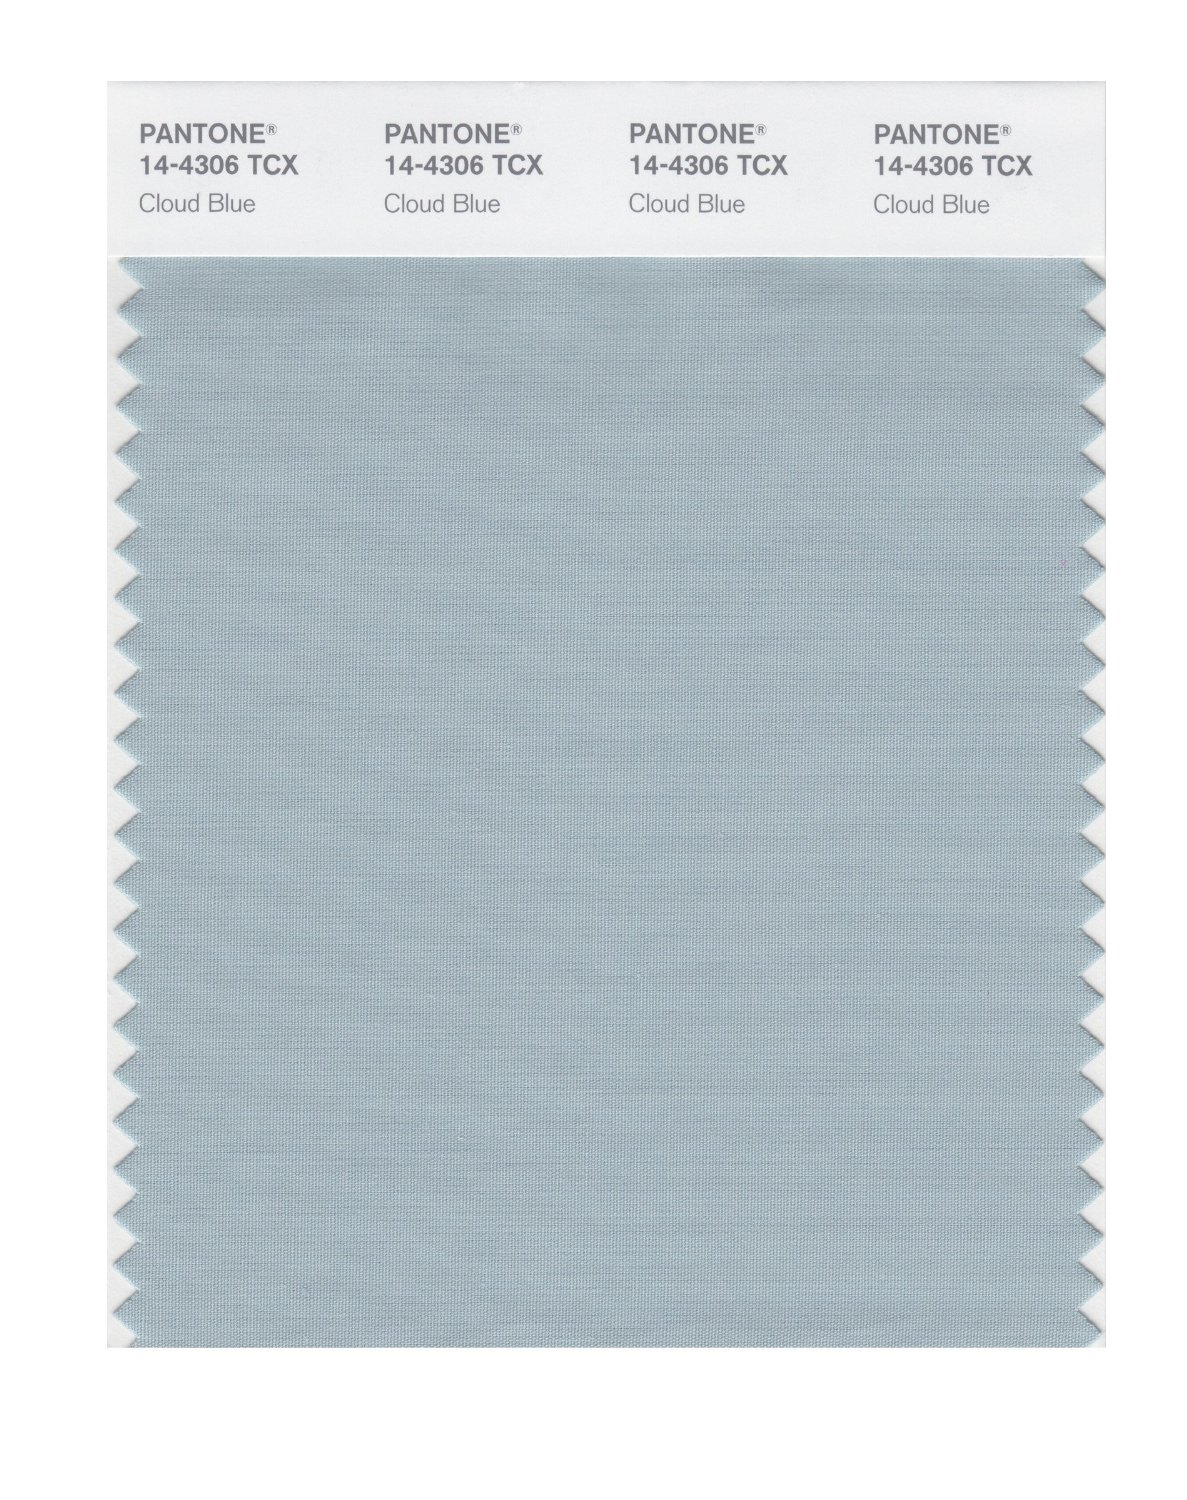 Pantone Smart Swatch 14-4306 Cloud Blue